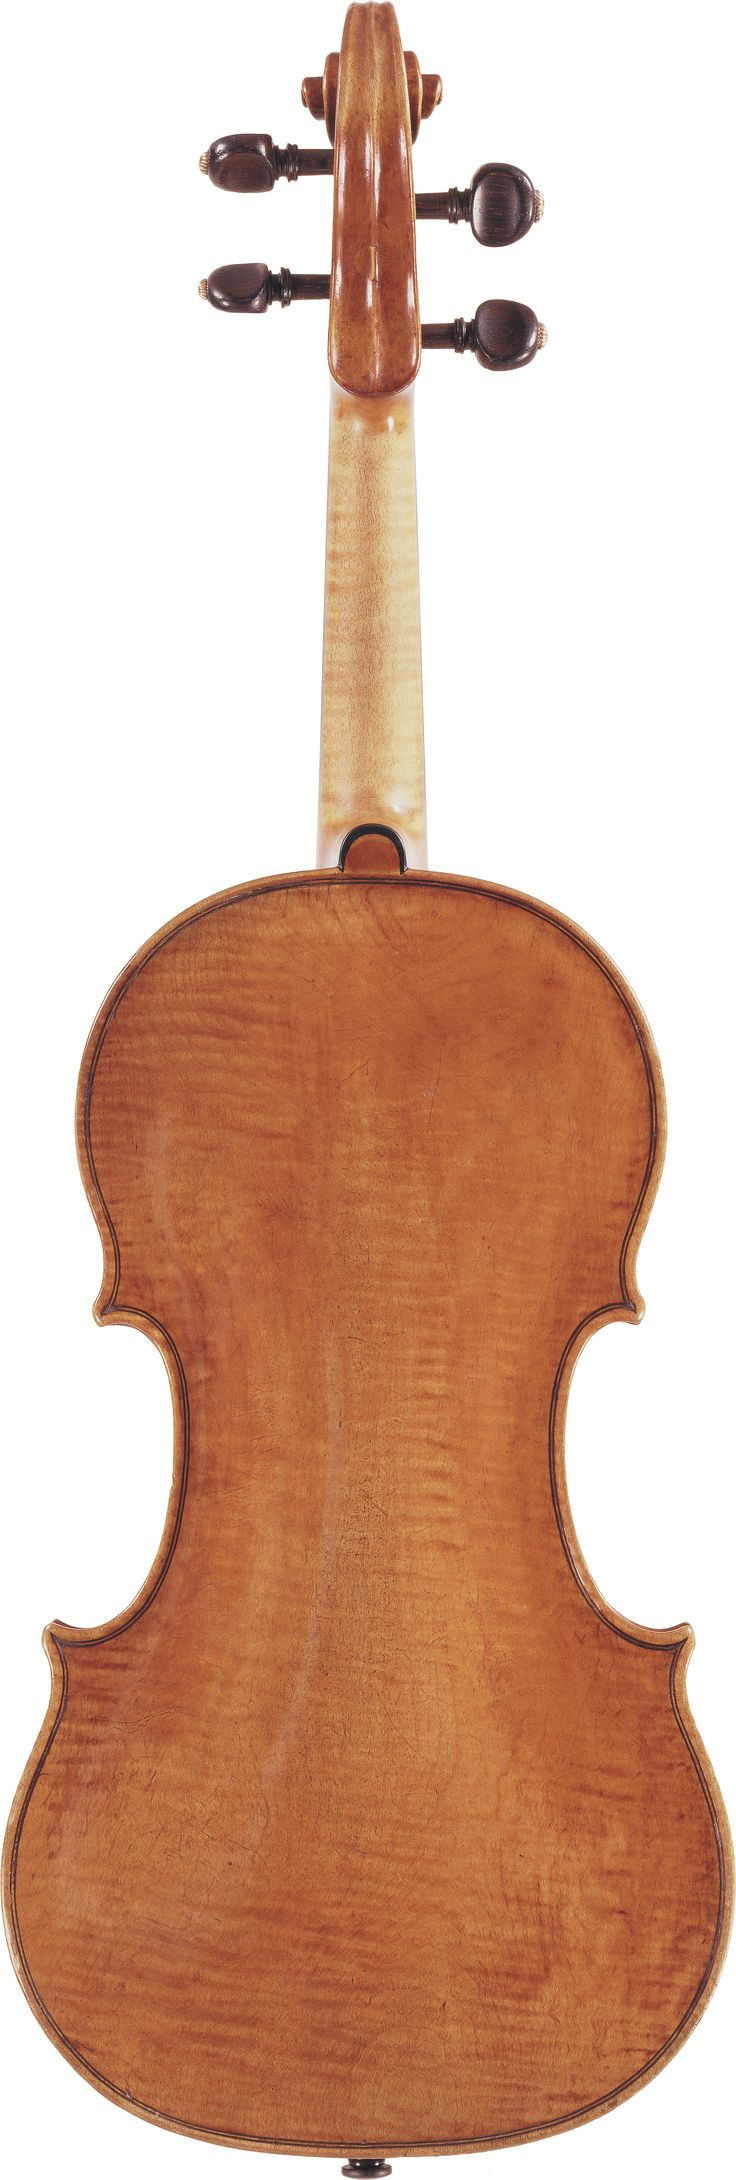 1645c Nicolo Amati Violin from The Four Centuries Gallery